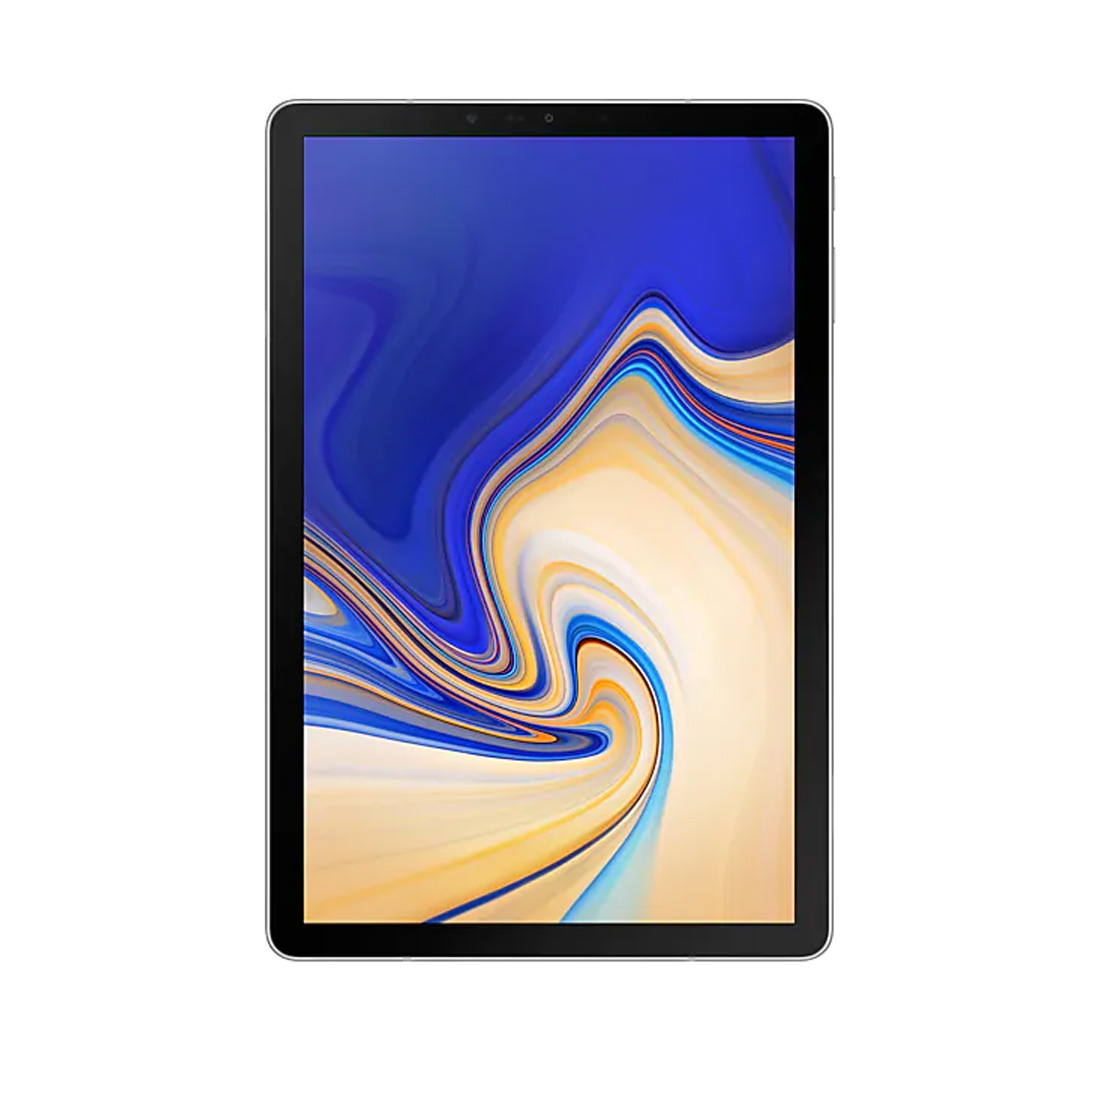 "Samsung Galaxy Tab S4 10.5"" 64GB Wi-Fi + 4G with S-Pen - Grey"